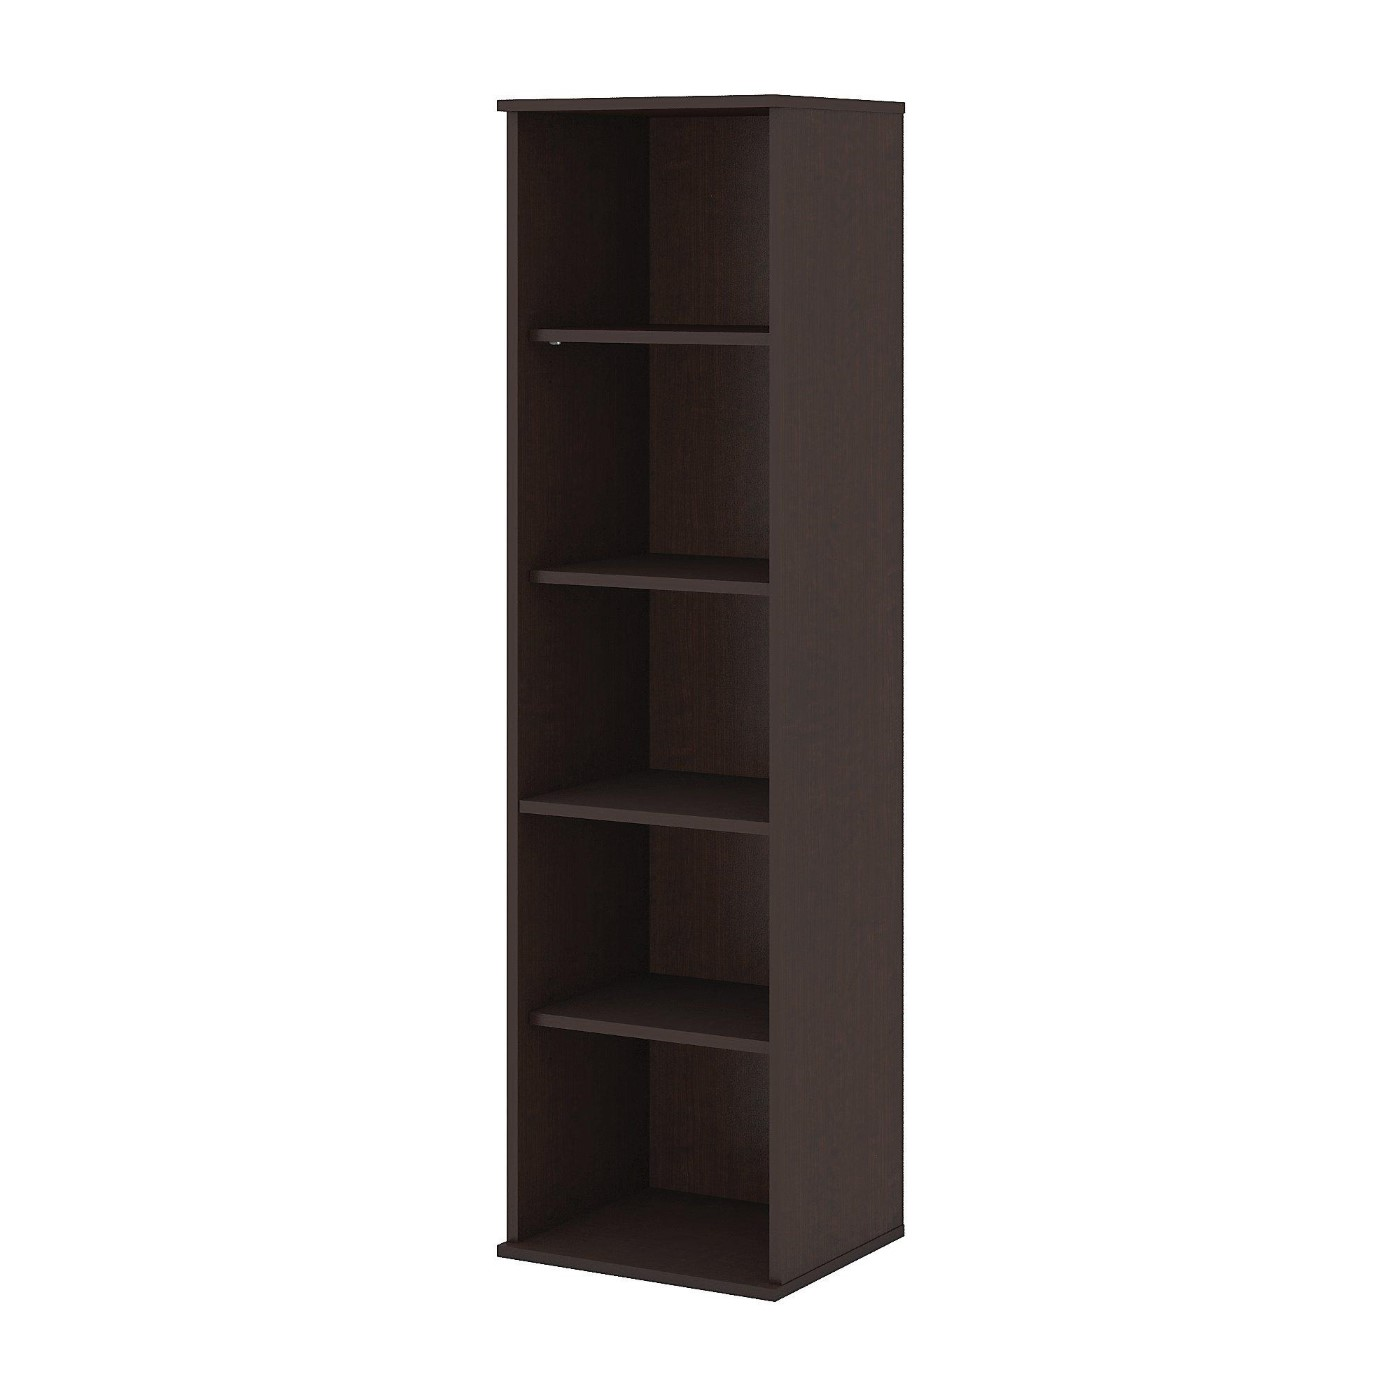 <font color=#c60><b>BUSH BUSINESS FURNITURE 66H 5 SHELF NARROW BOOKCASE. FREE SHIPPING</font></b></font></b>